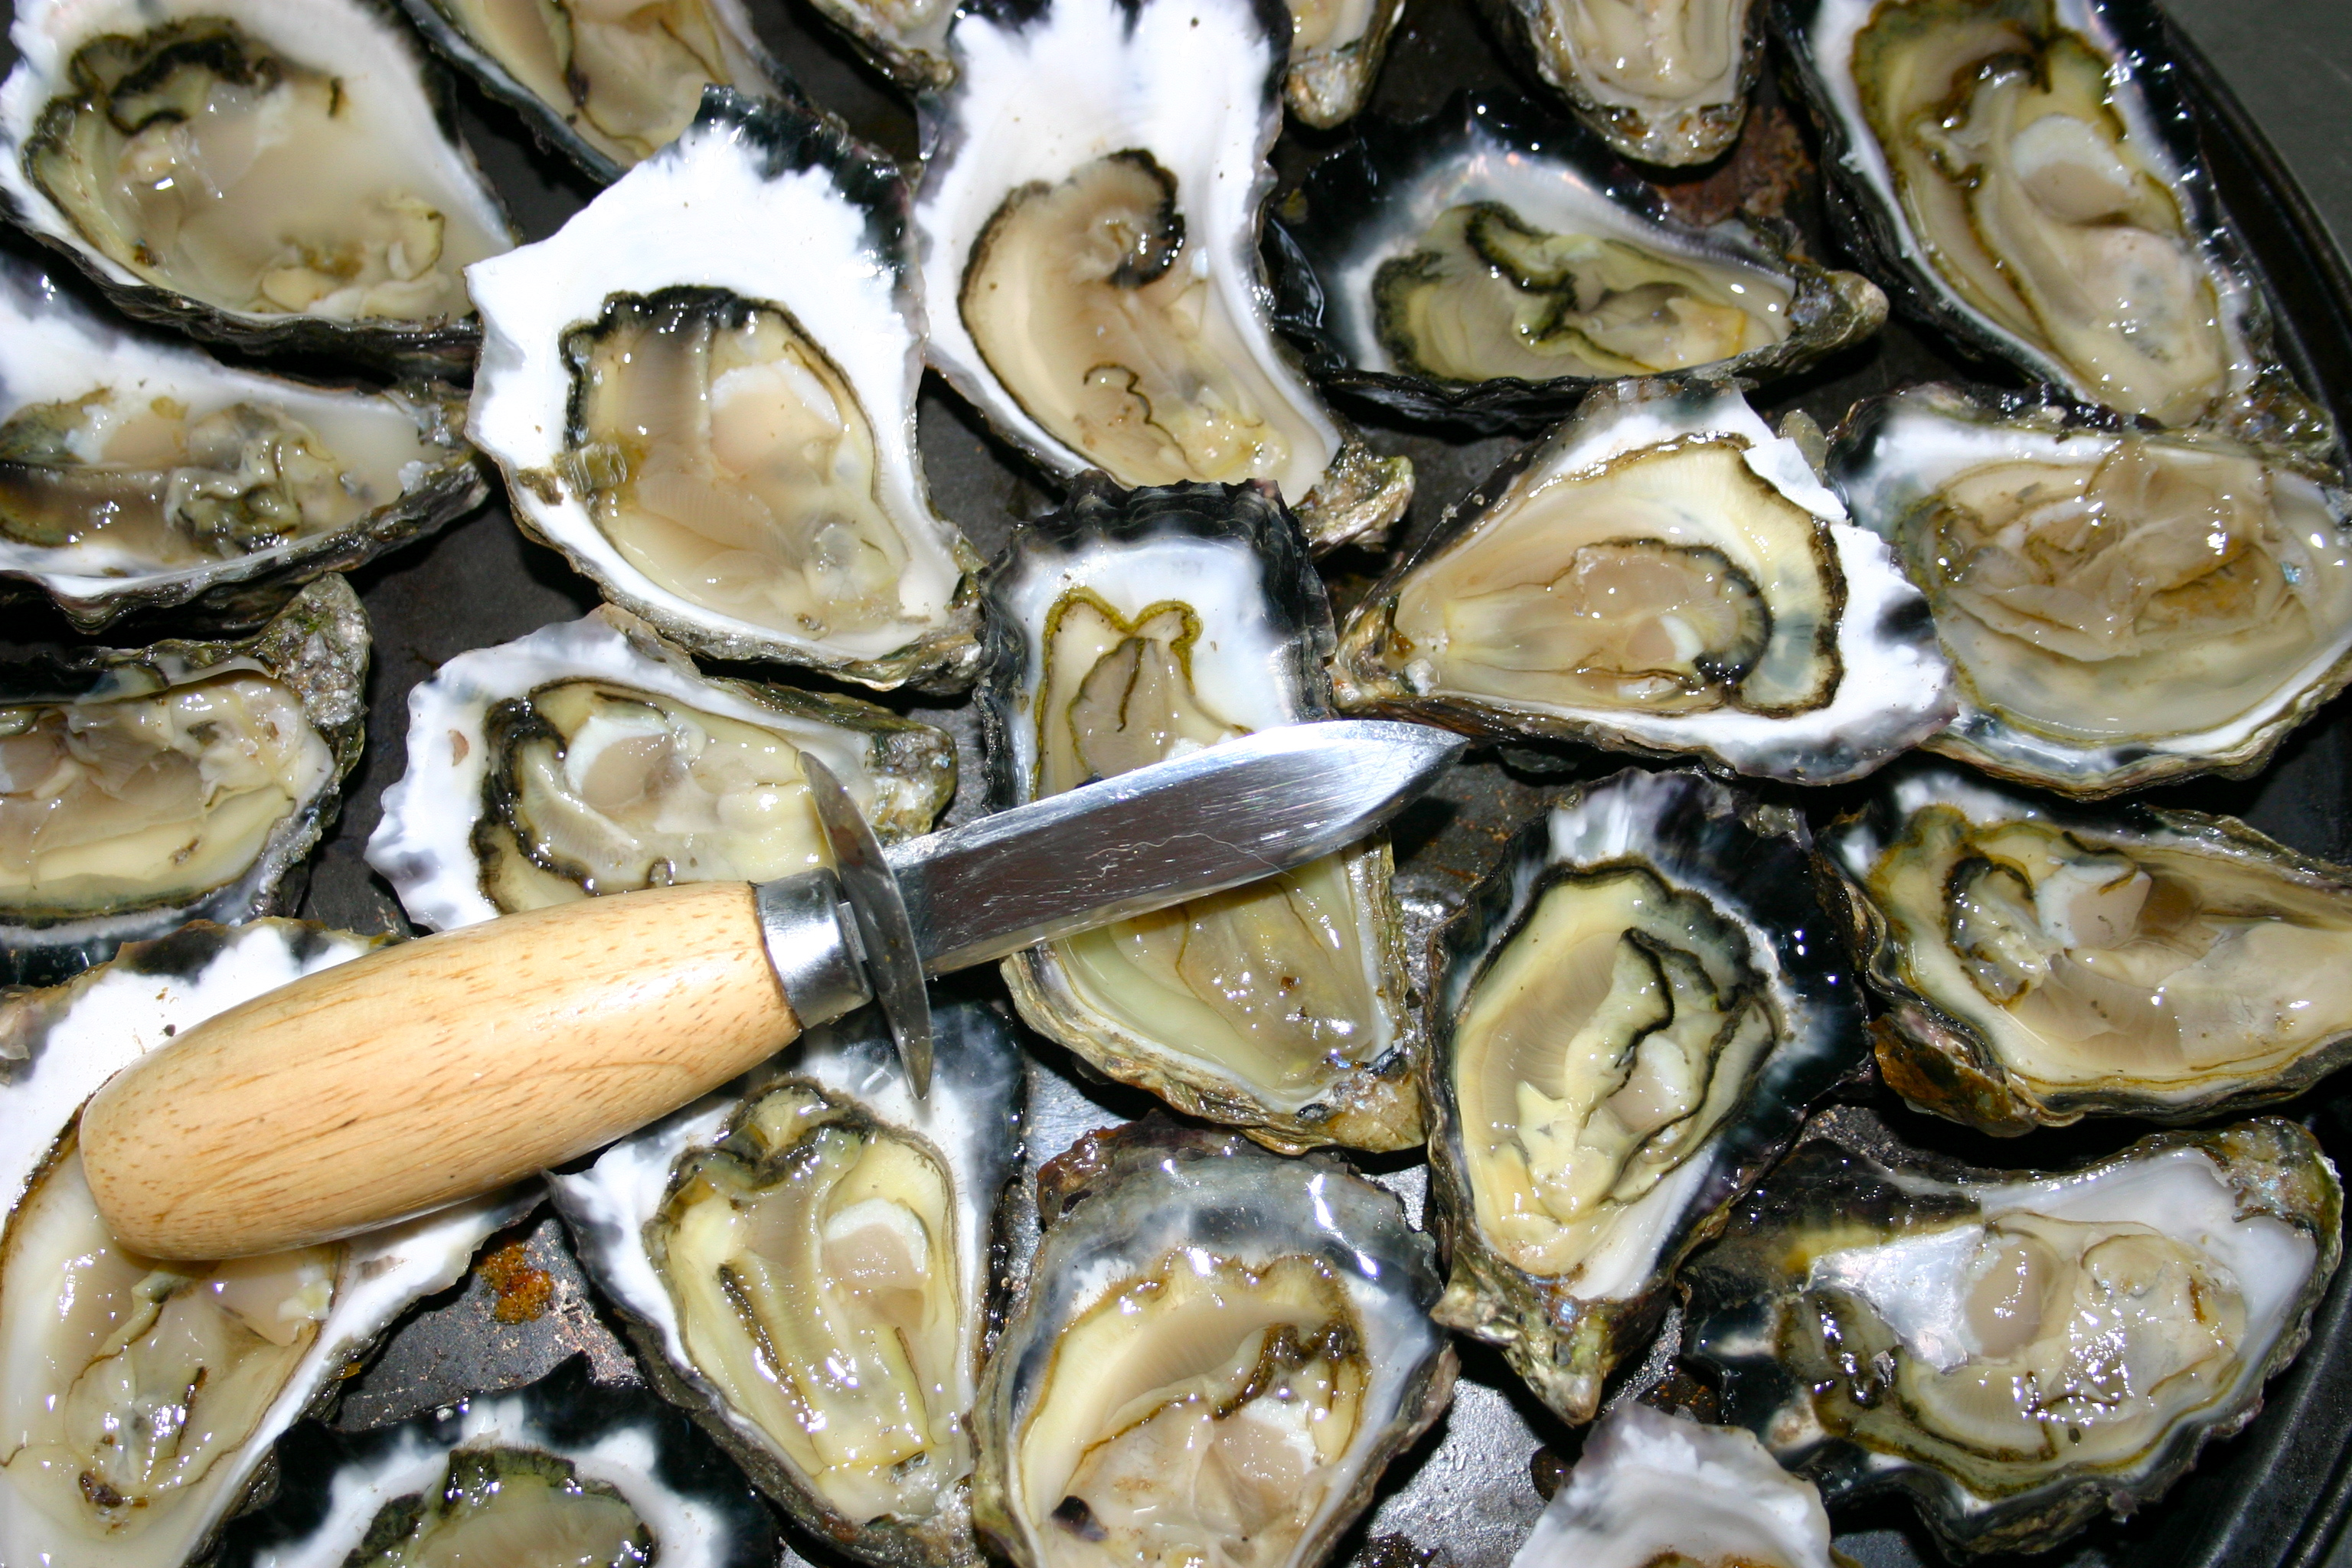 Oyster background